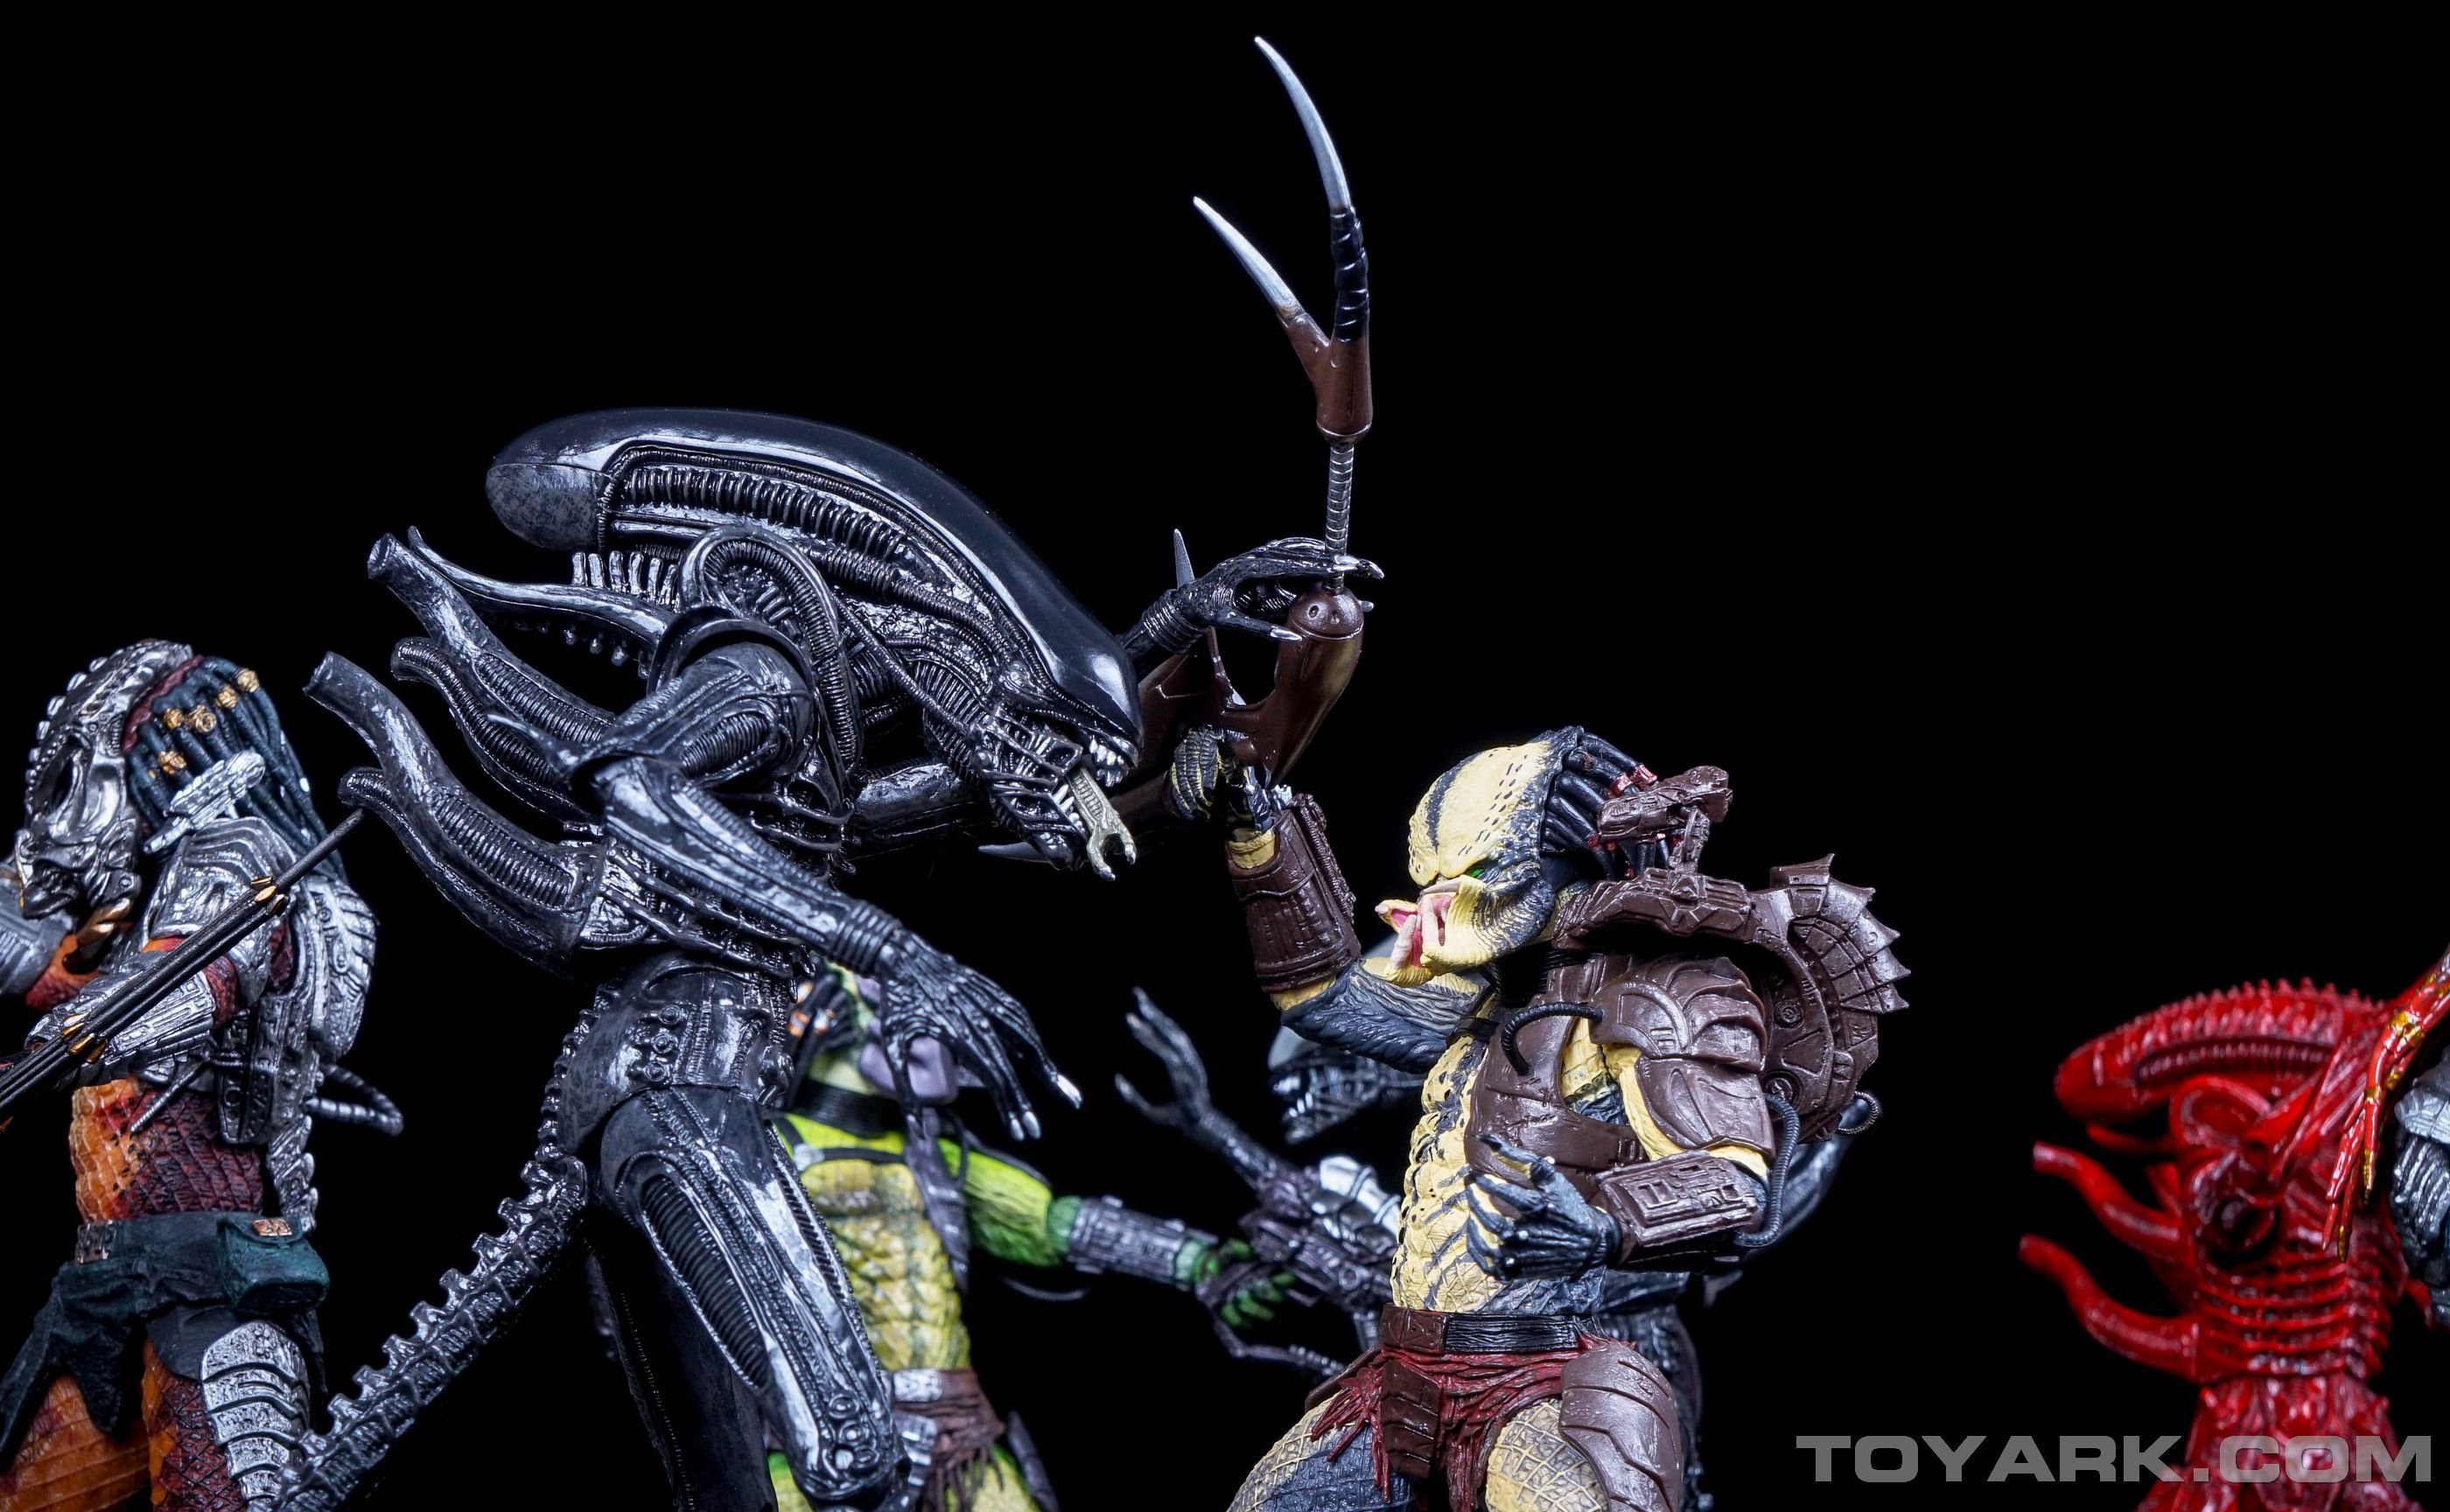 http://news.toyark.com/wp-content/uploads/sites/4/2015/08/TRU-Alien-vs-Predaator-Exclusive-067.jpg